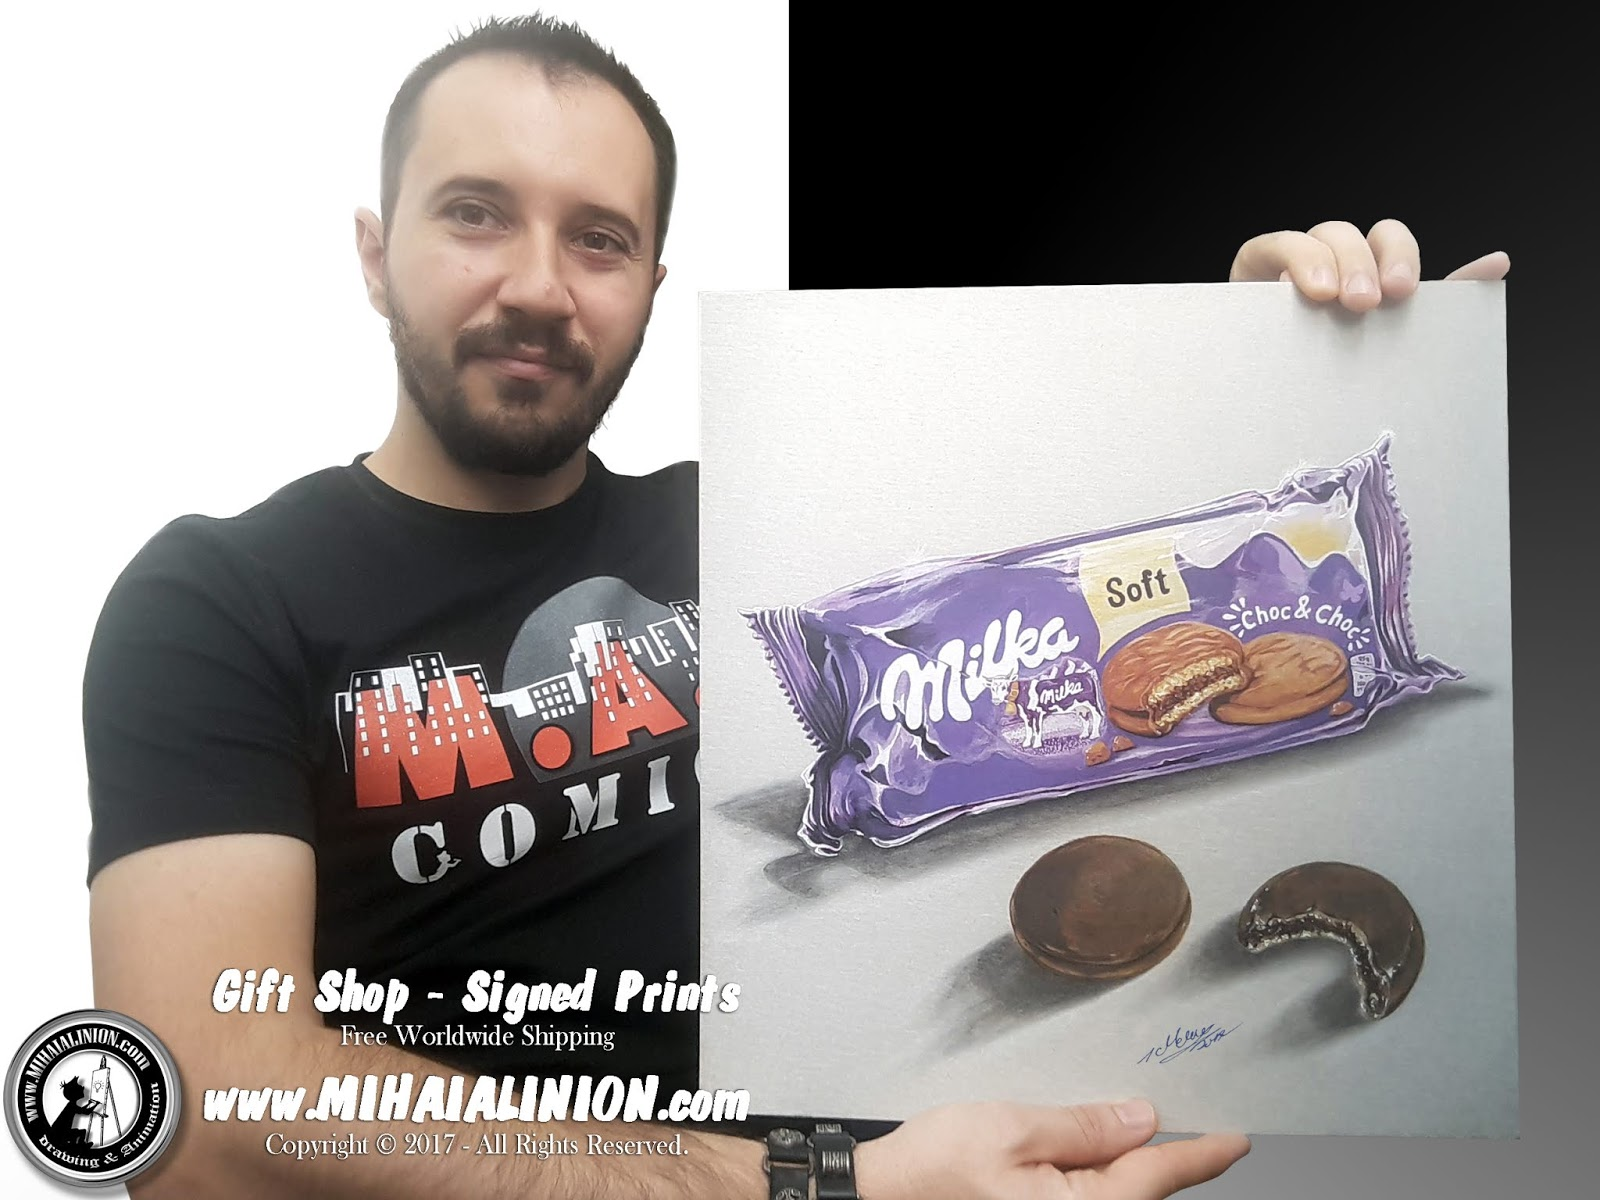 Drawing Drawing Milka Choco Biscuits, Drawing sweets, Drawing Milka, biscuits, biscuits illustration, la petite marmotte, la vache mauve, painting biscuits, mondelez international, Phillipe Suchard, How to draw Milka, chocolate pencil drawing, illustrations by mihai alin ion, MAI Comics, Mihai Alin Ion, art by mihai alin ion, how to draw, artselfie, drawing ideas, free drawing lessons, drawing tutorial, art, dessin, disegno, dibujo, drawing for kids, drawing, illustration, painting, design, realistic 3d art, coloured pencils, www.mihaialinion.com, 2018, pencil drawing, tempera, acrilics paint, marker, gouache painting, mixed media, comics, comic book, caricature, portrait, cum sa desenezi, caricaturi mihai alin ion, caricaturi si portrete  la comanda, eveniment caricaturi, caricaturi la nunta, caricaturi la botez, caricaturi la majorat, desene pe pereti, desene pentru copii, ilustratie carte, benzi desenate, caricaturi, portrete, comanda caricaturi